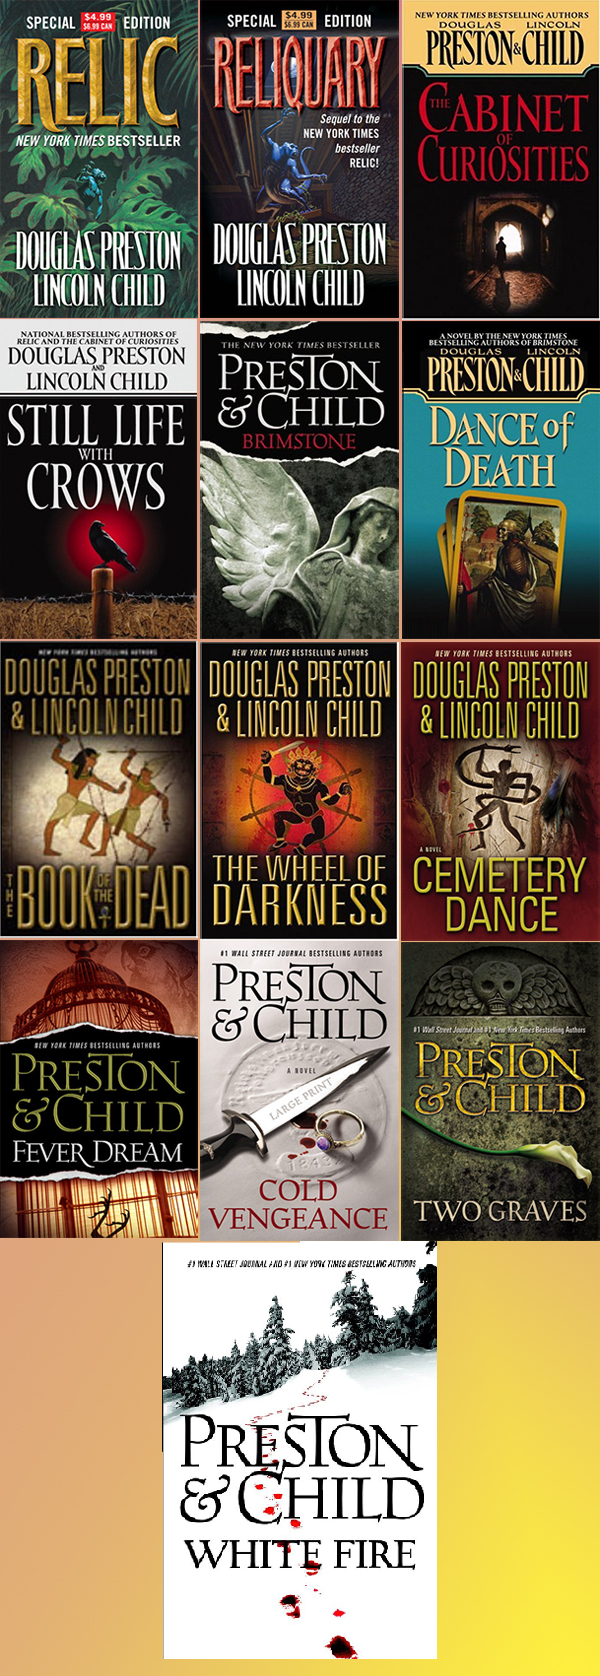 pendergast order books novels preston child douglas lincoln series mystery agent reading mysterysequels horror aloysius characters character read fever newest